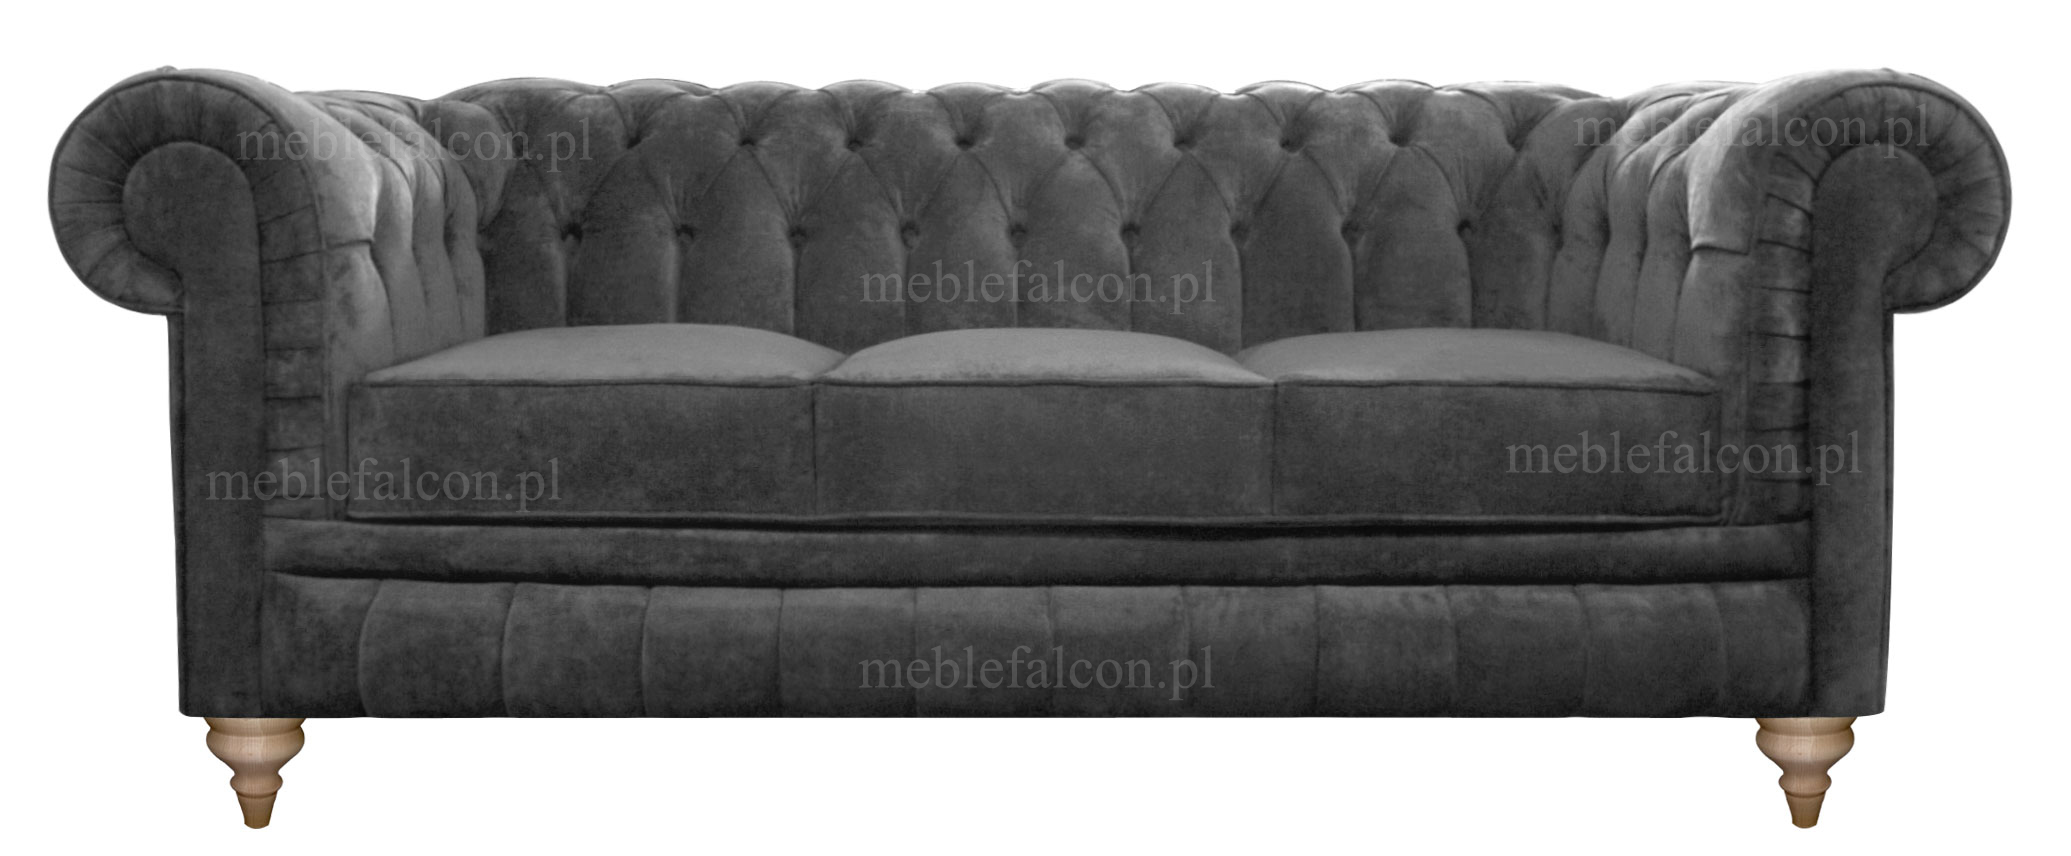 sofa chesterfield szara pluszowa